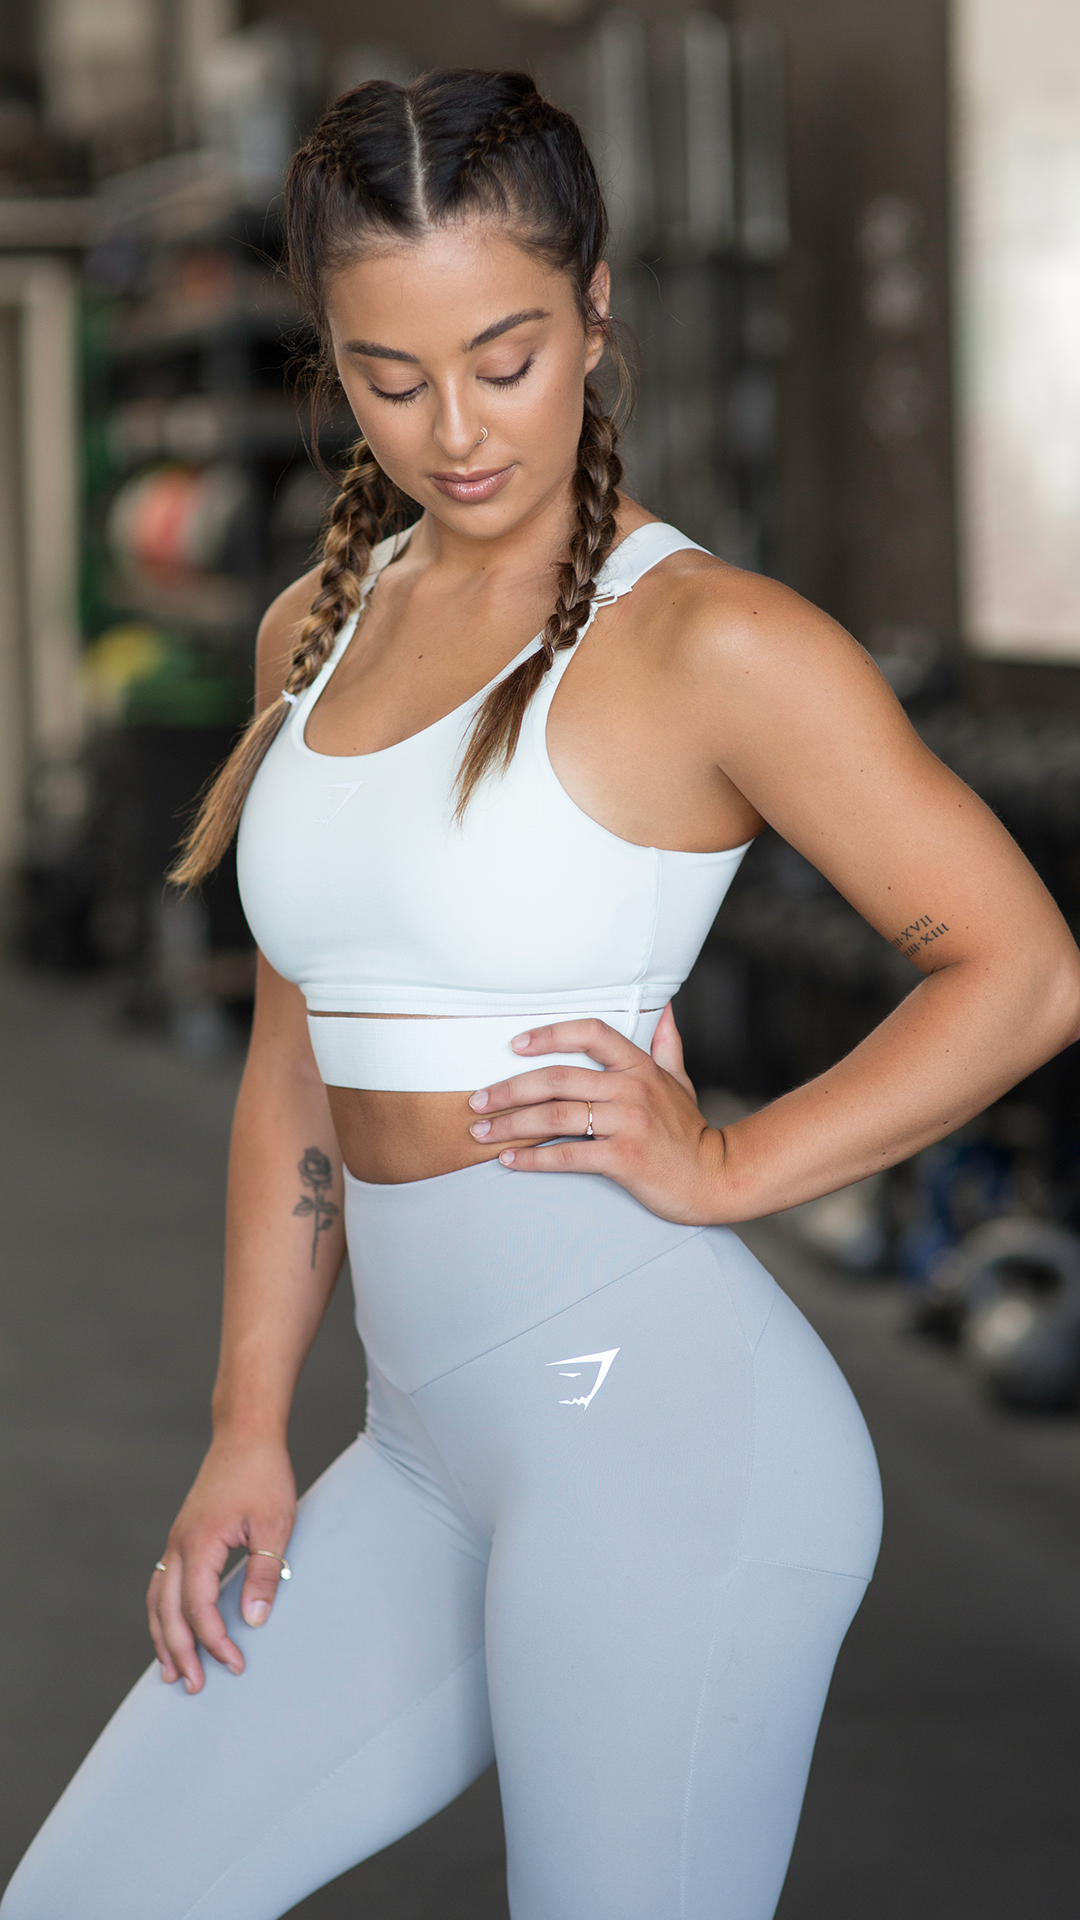 c40481b509 The Embody Sports Bra    Seafoam Green.  Gymshark  OutfitInspiration   Workout  Fitness  Pastel  SportsBra  HighWaisted  Leggings